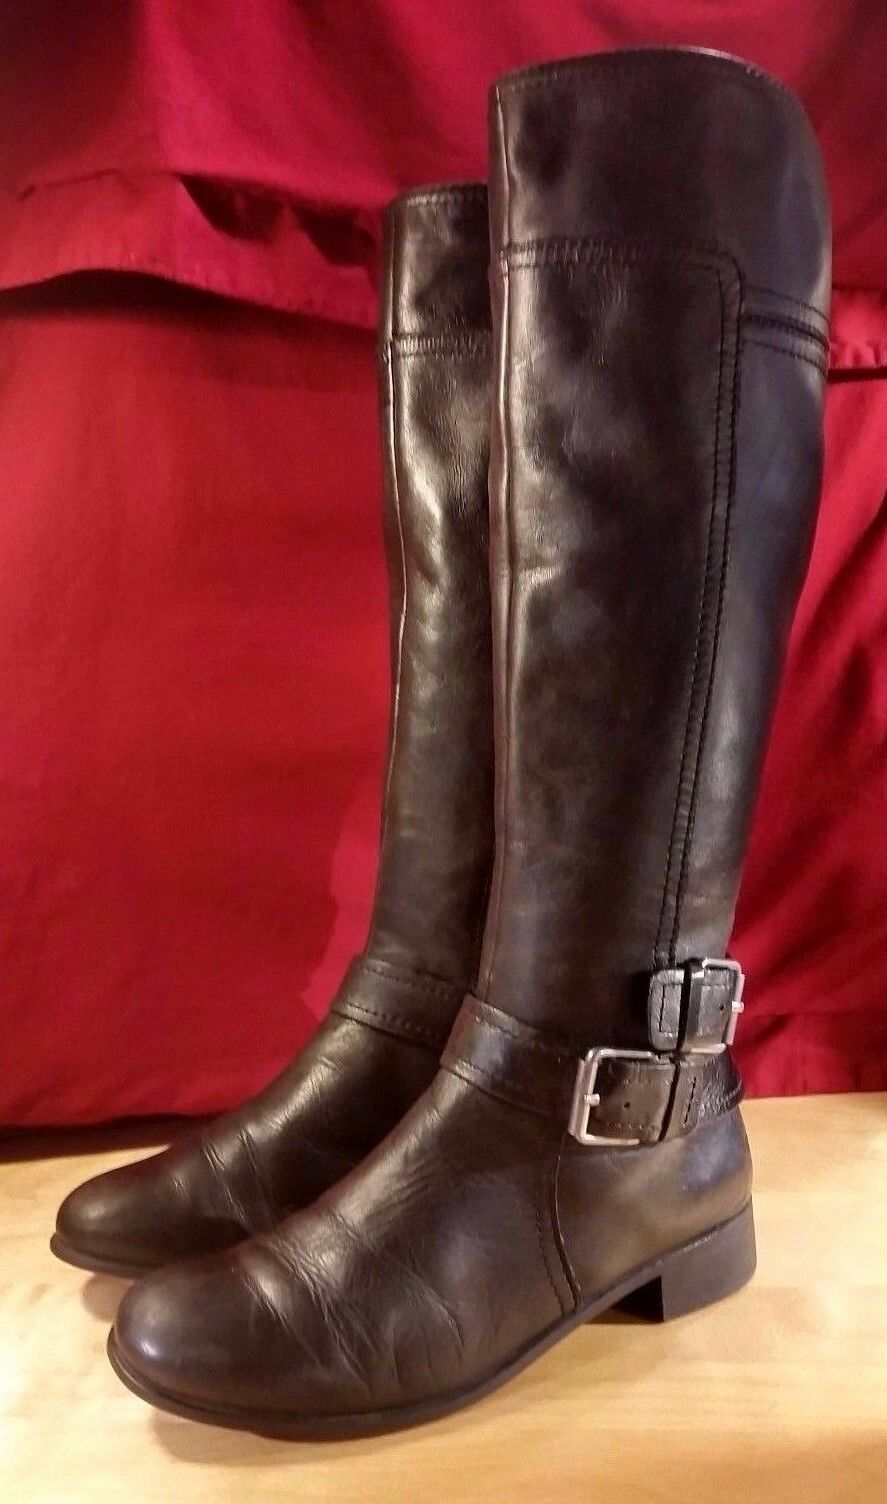 NINE WEST VINT. AMER. WOMEN VASHIZA KNEE-HIGH RIDING BLK LEATHER BOOTS SZ 5.5M